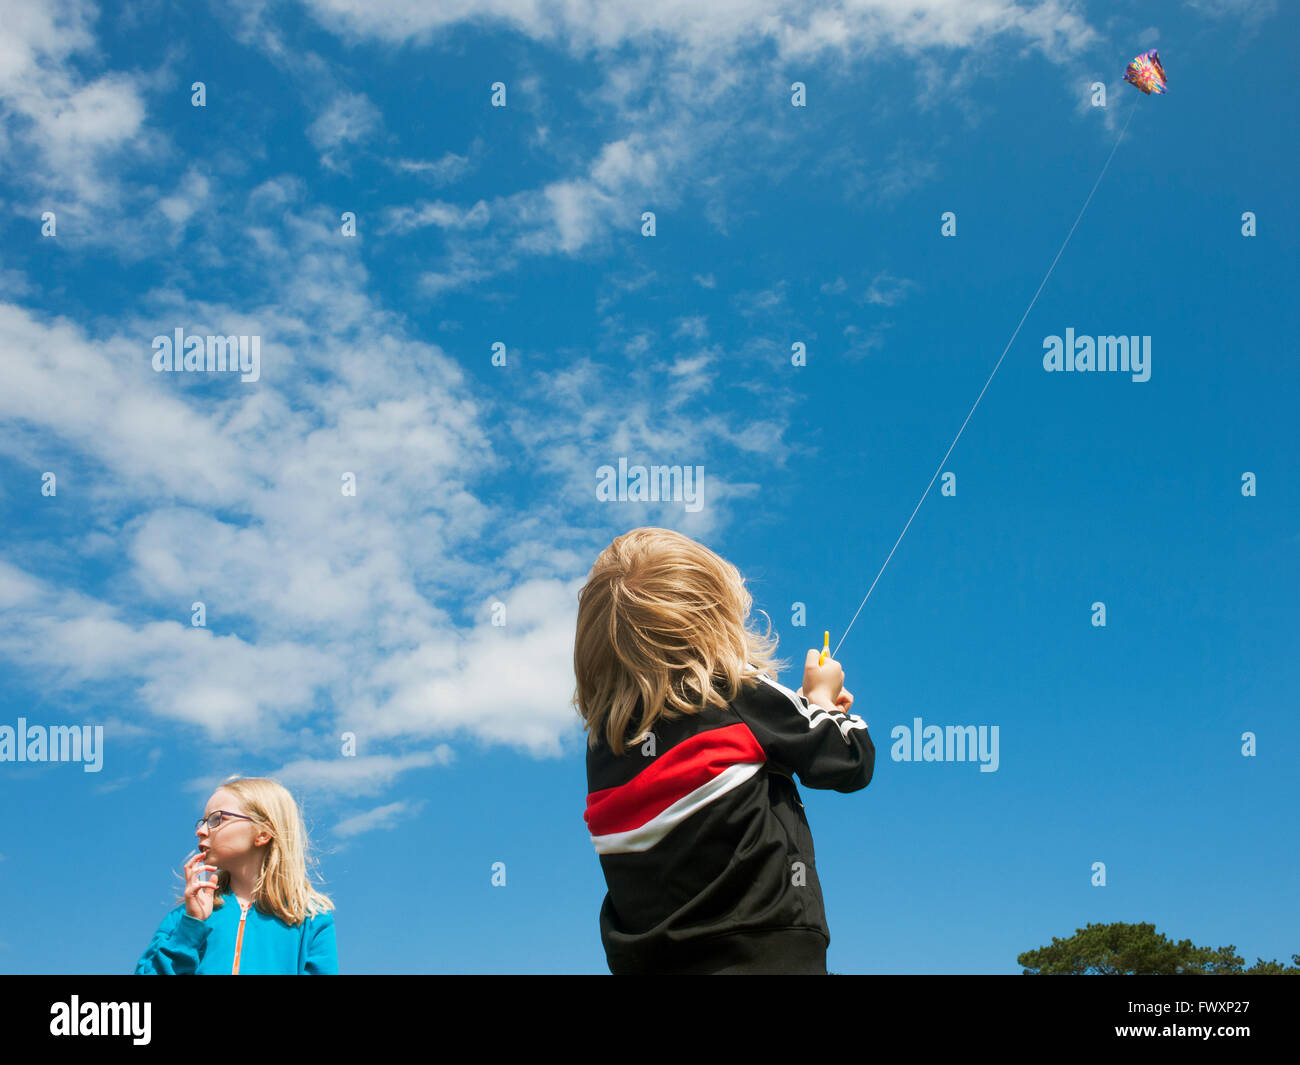 Sweden, Skane, Nyhamnslage, Two sisters (6-7, 10-11) flying kite - Stock Image